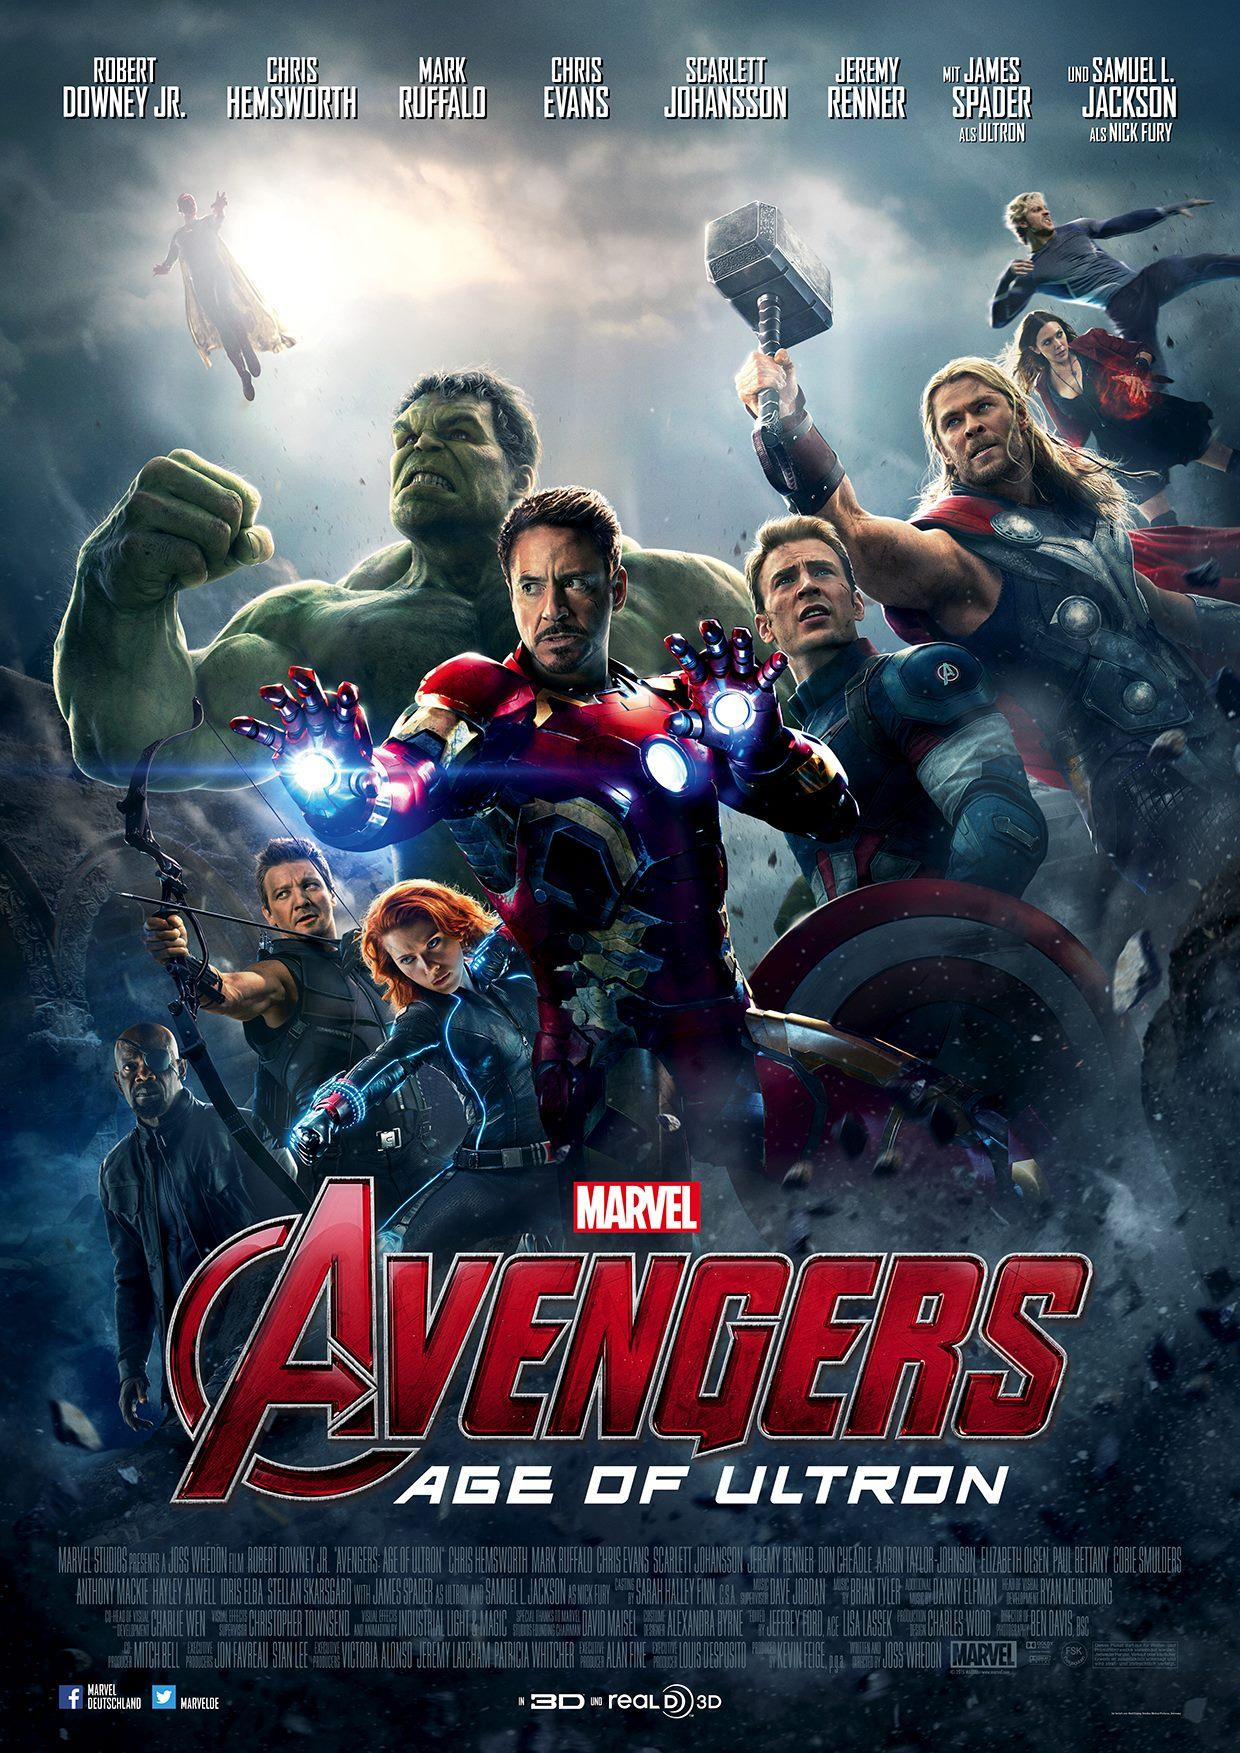 FREE DOWNLOAD of 'Marvel's Avengers: Age of Ultron' Firsts Digital Comic Bundle'with Ticket Purchase @ Fandango VIPs